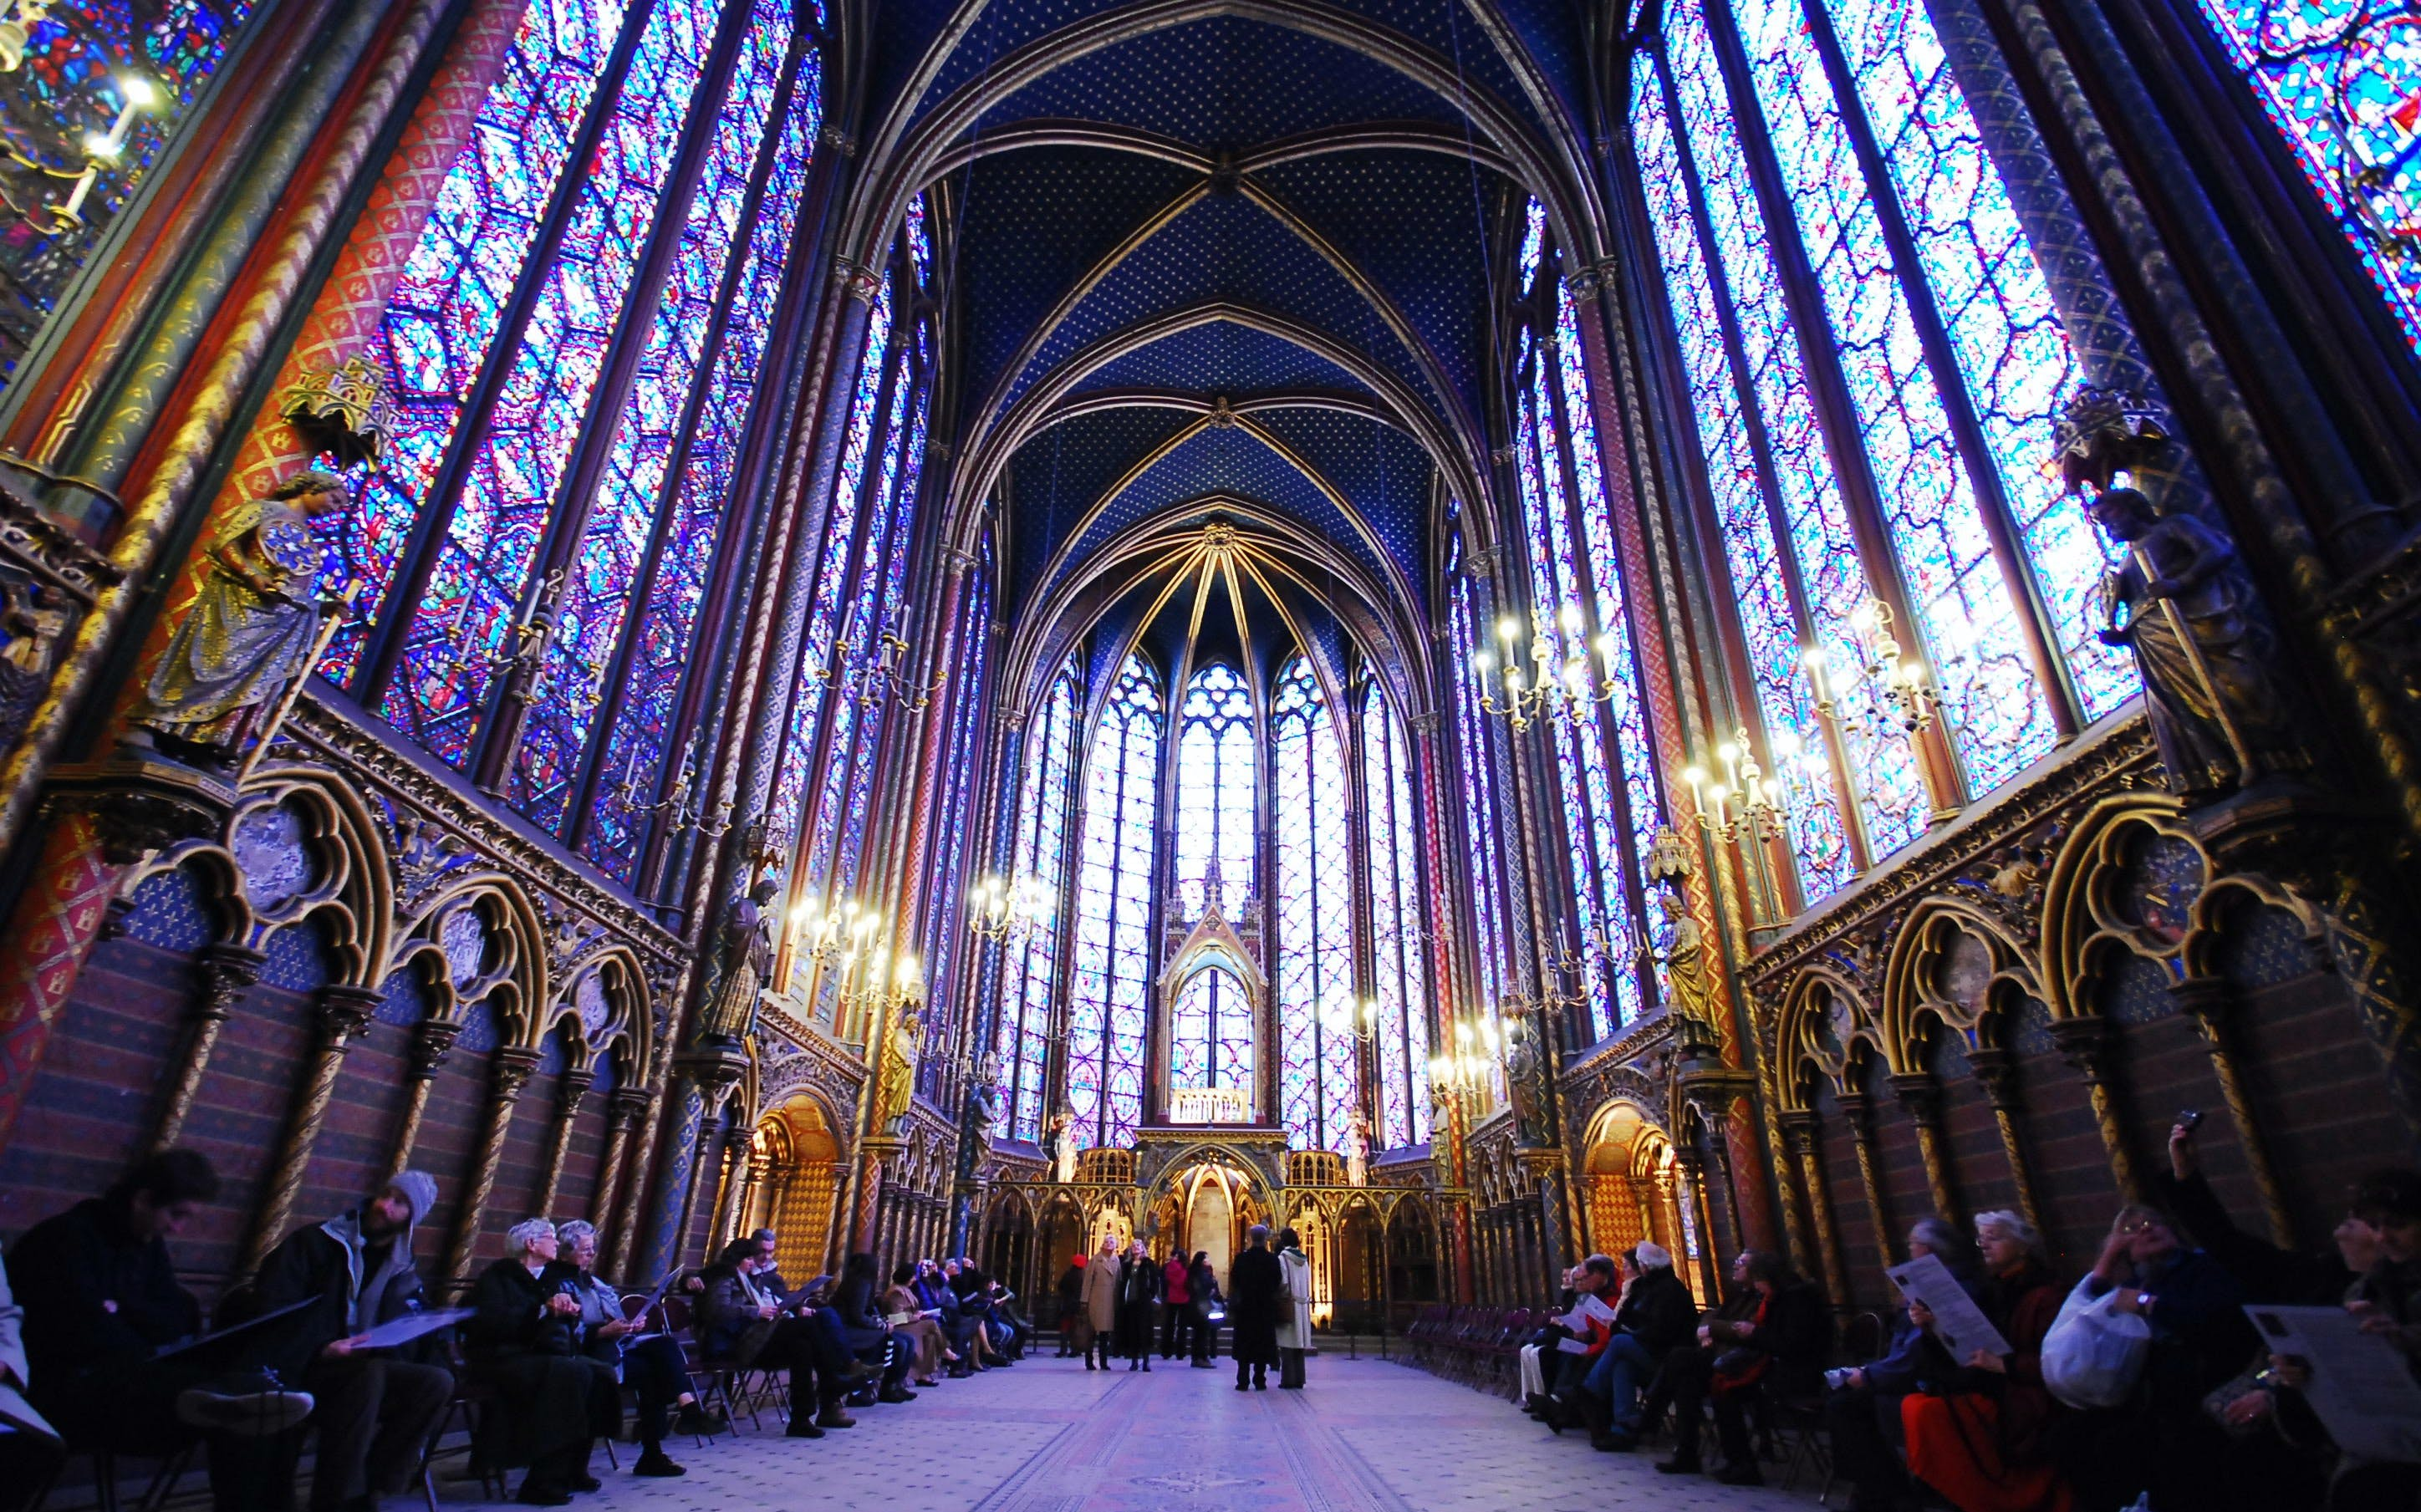 Skip The Line Sainte Chapelle Tickets + Seine River Cruise